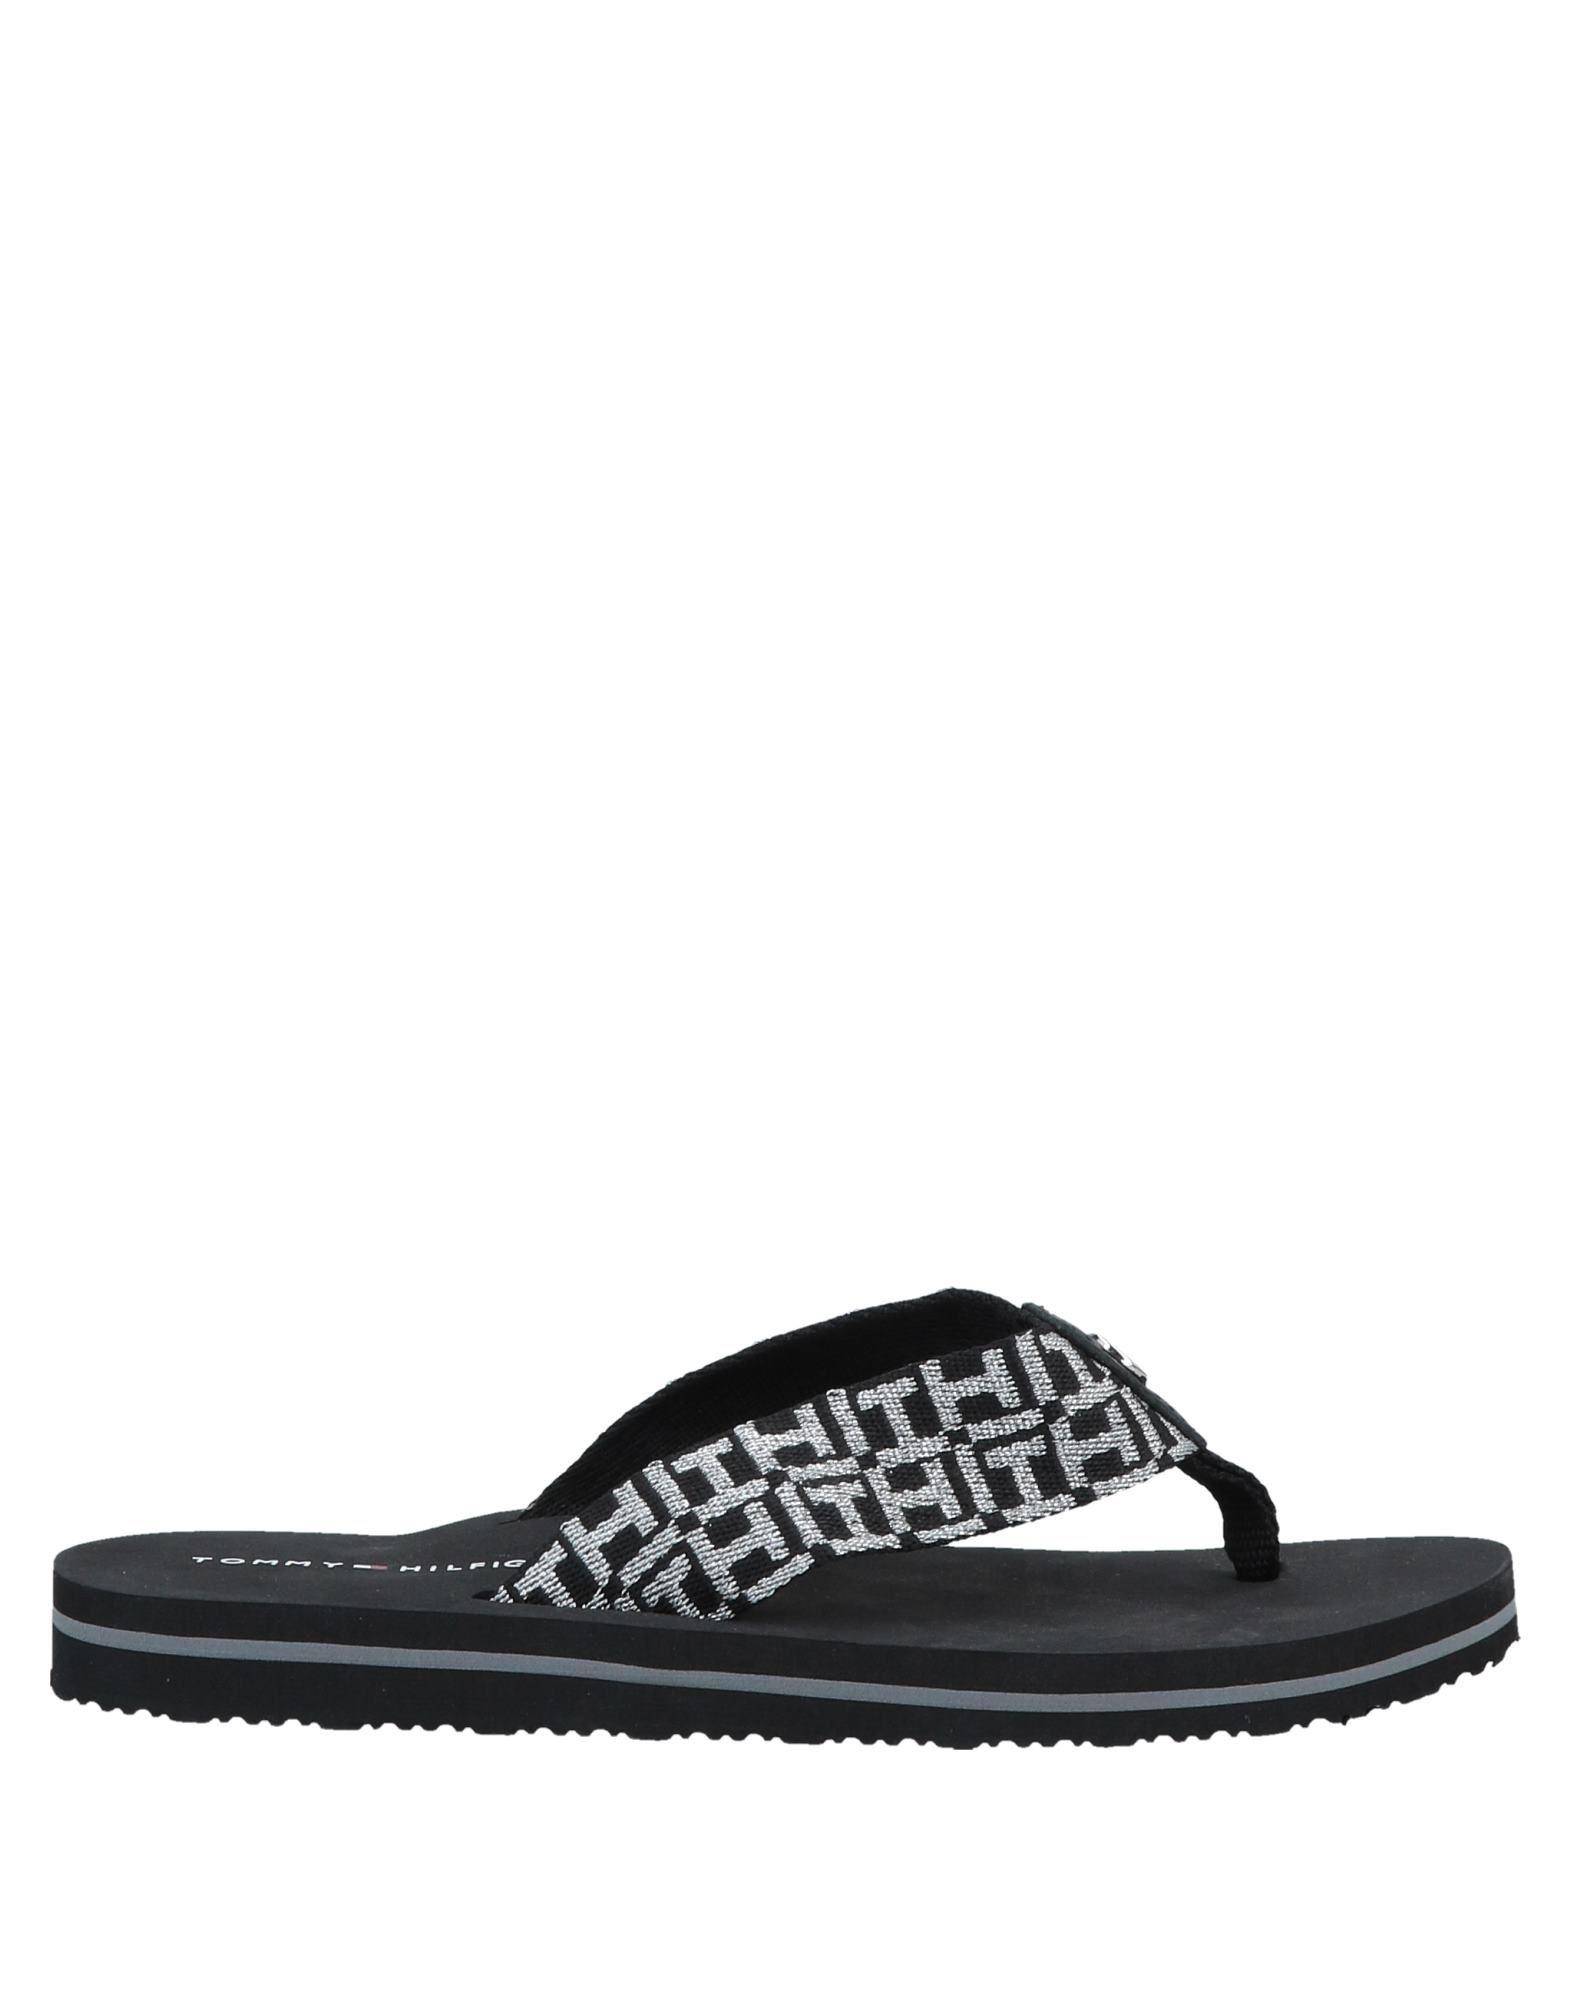 official photos 030dc 22e7a tommy-hilfiger-Black-Toe-Strap-Sandal.jpeg